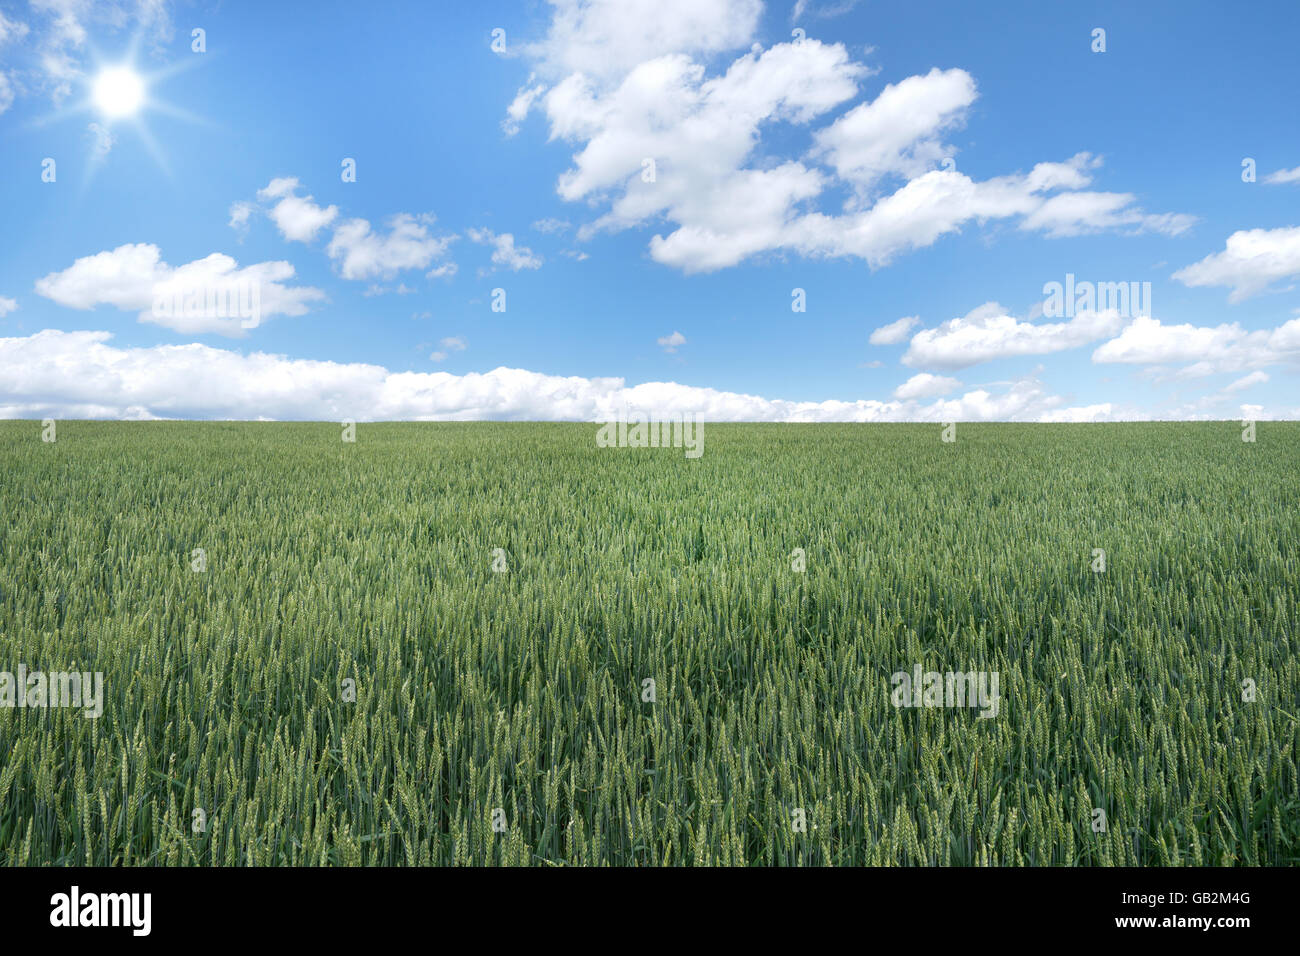 Large green wheat field - Stock Image